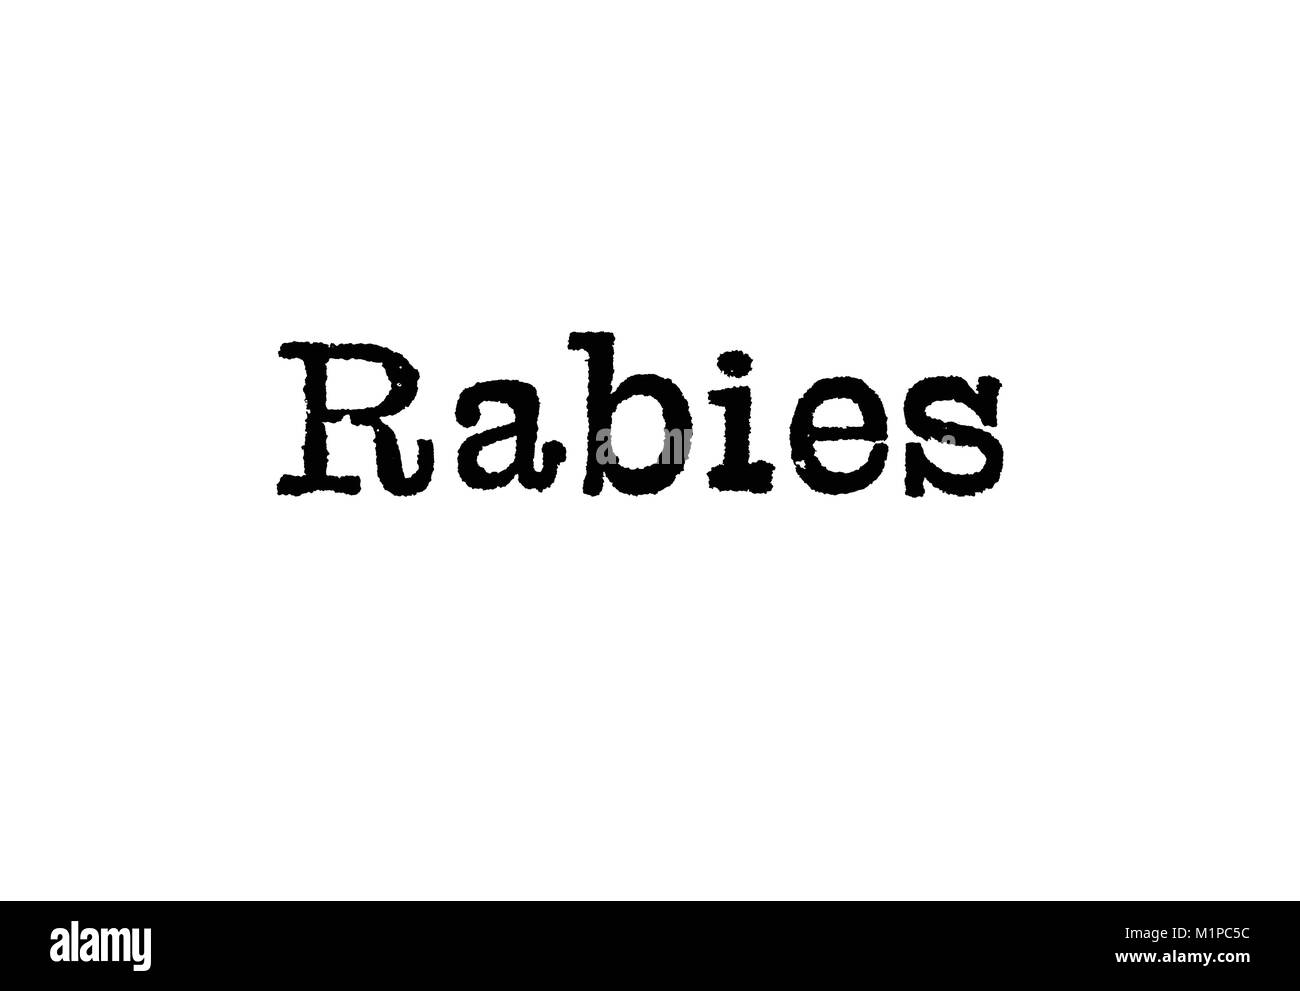 The word Rabies from a typewriter on a white background - Stock Image